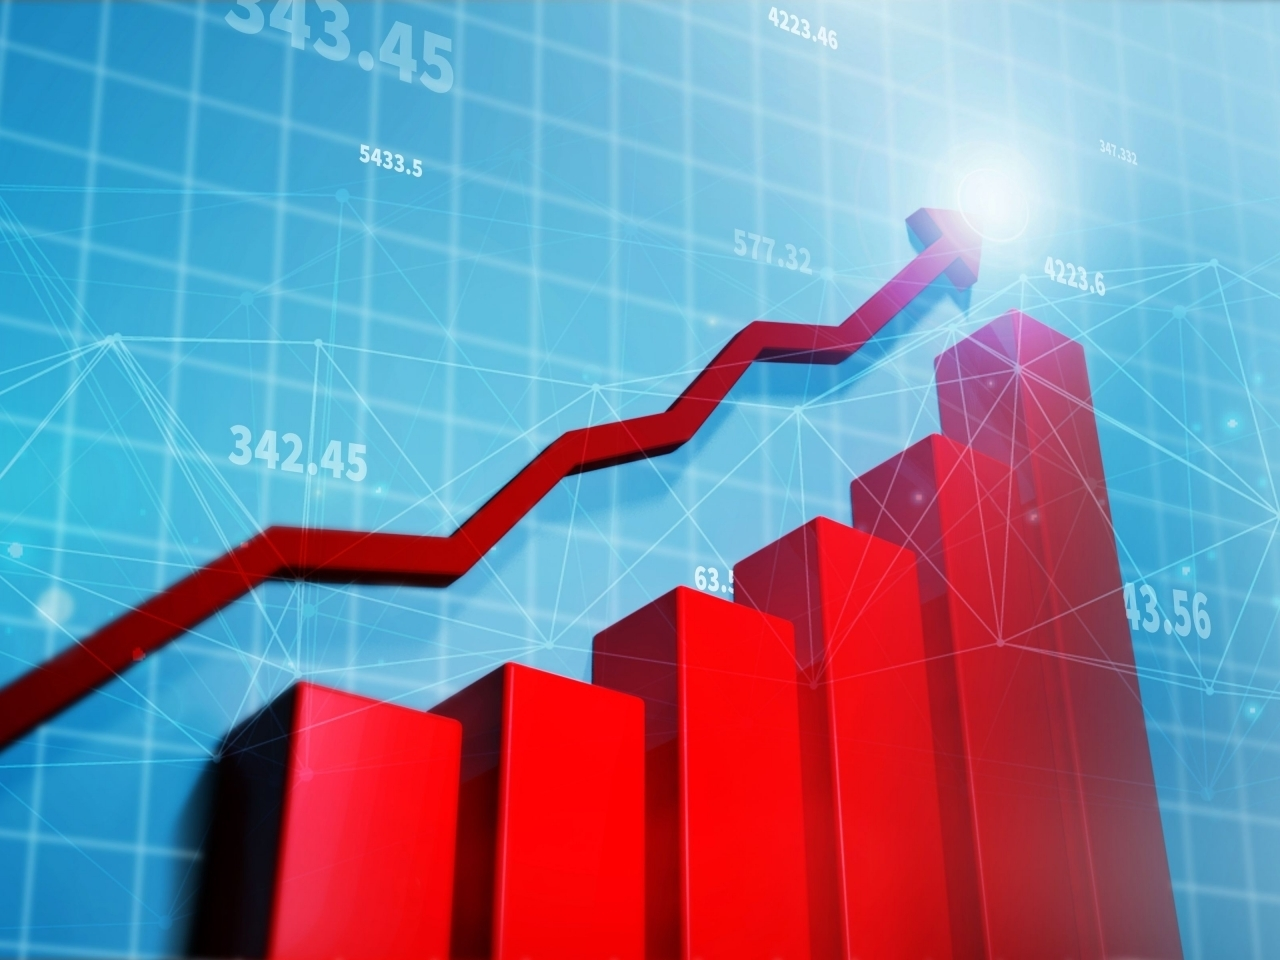 The Hang Seng Index opens the week with gains. Image: Shutterstock